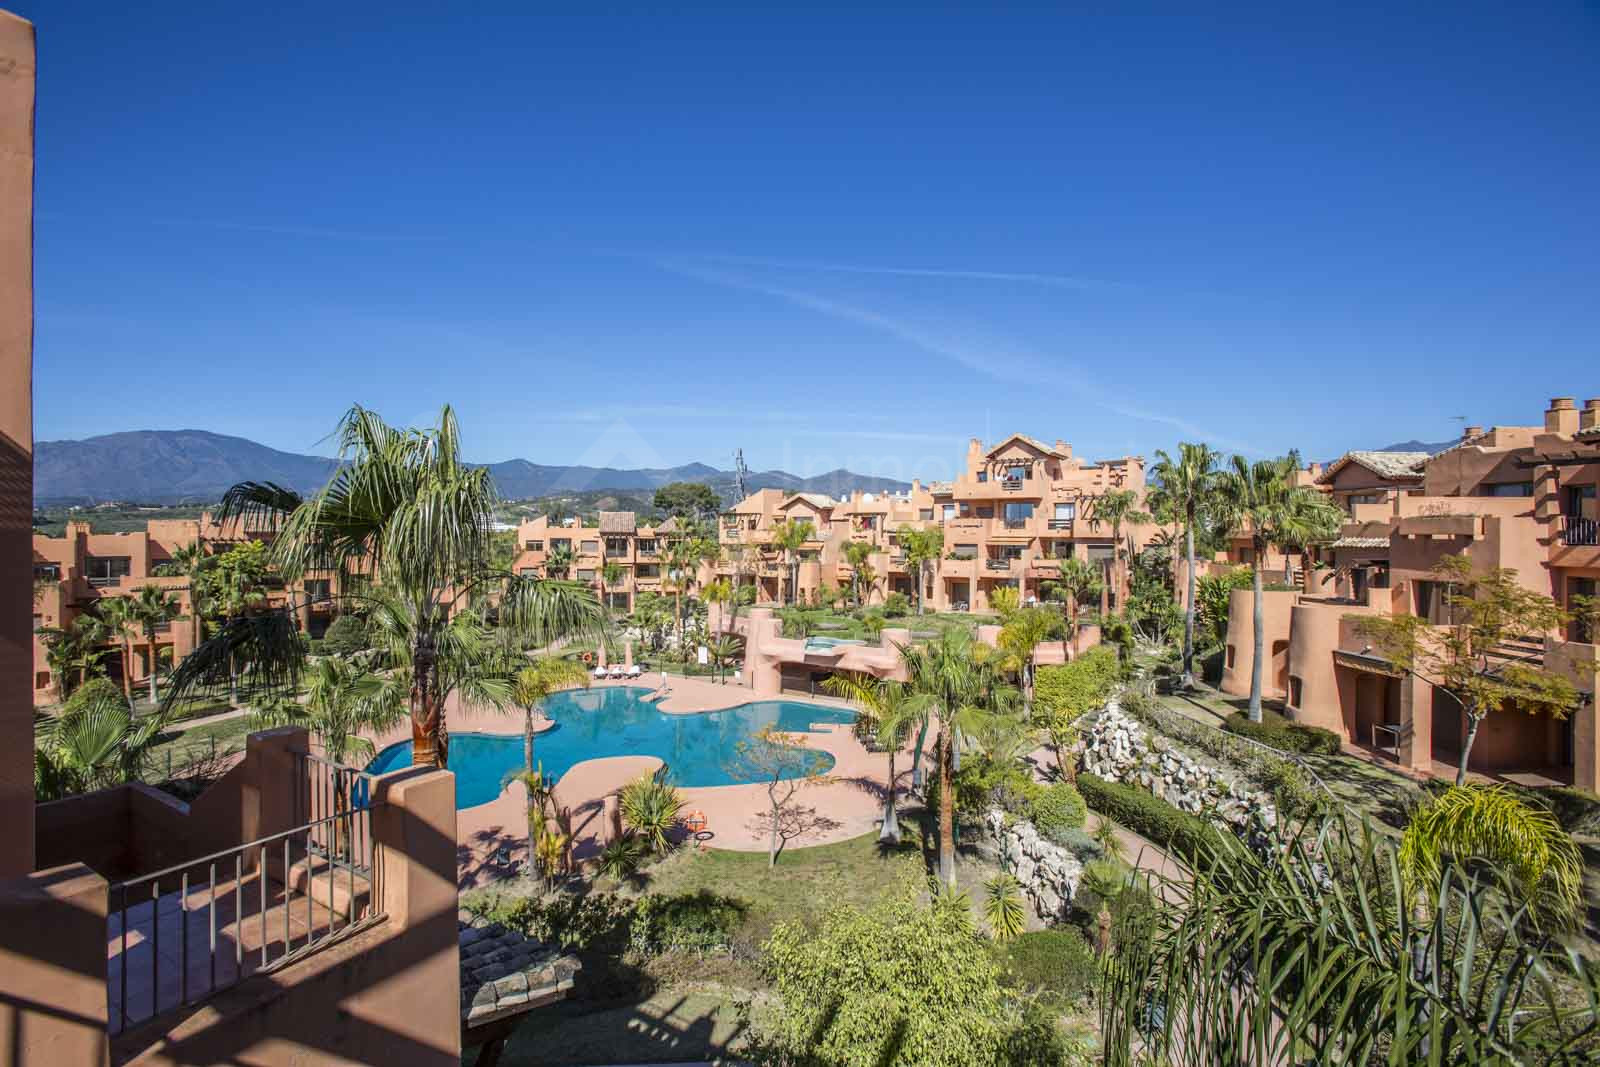 3 bedroom luxury apartment for sale in Sotoserena, Estepona